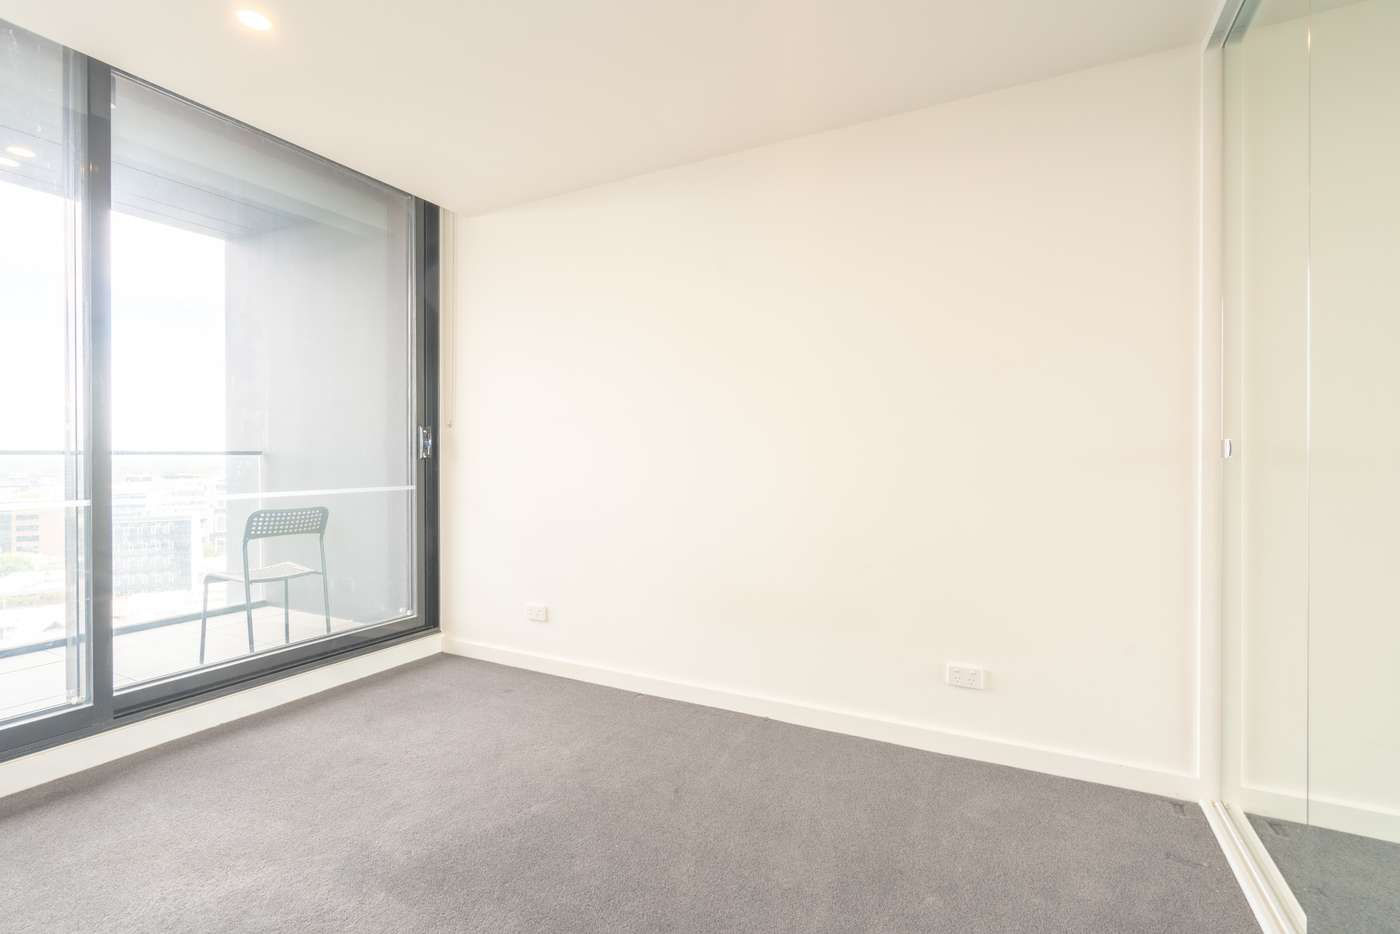 Sixth view of Homely apartment listing, 1305/61-63 Haig Street, Southbank VIC 3006